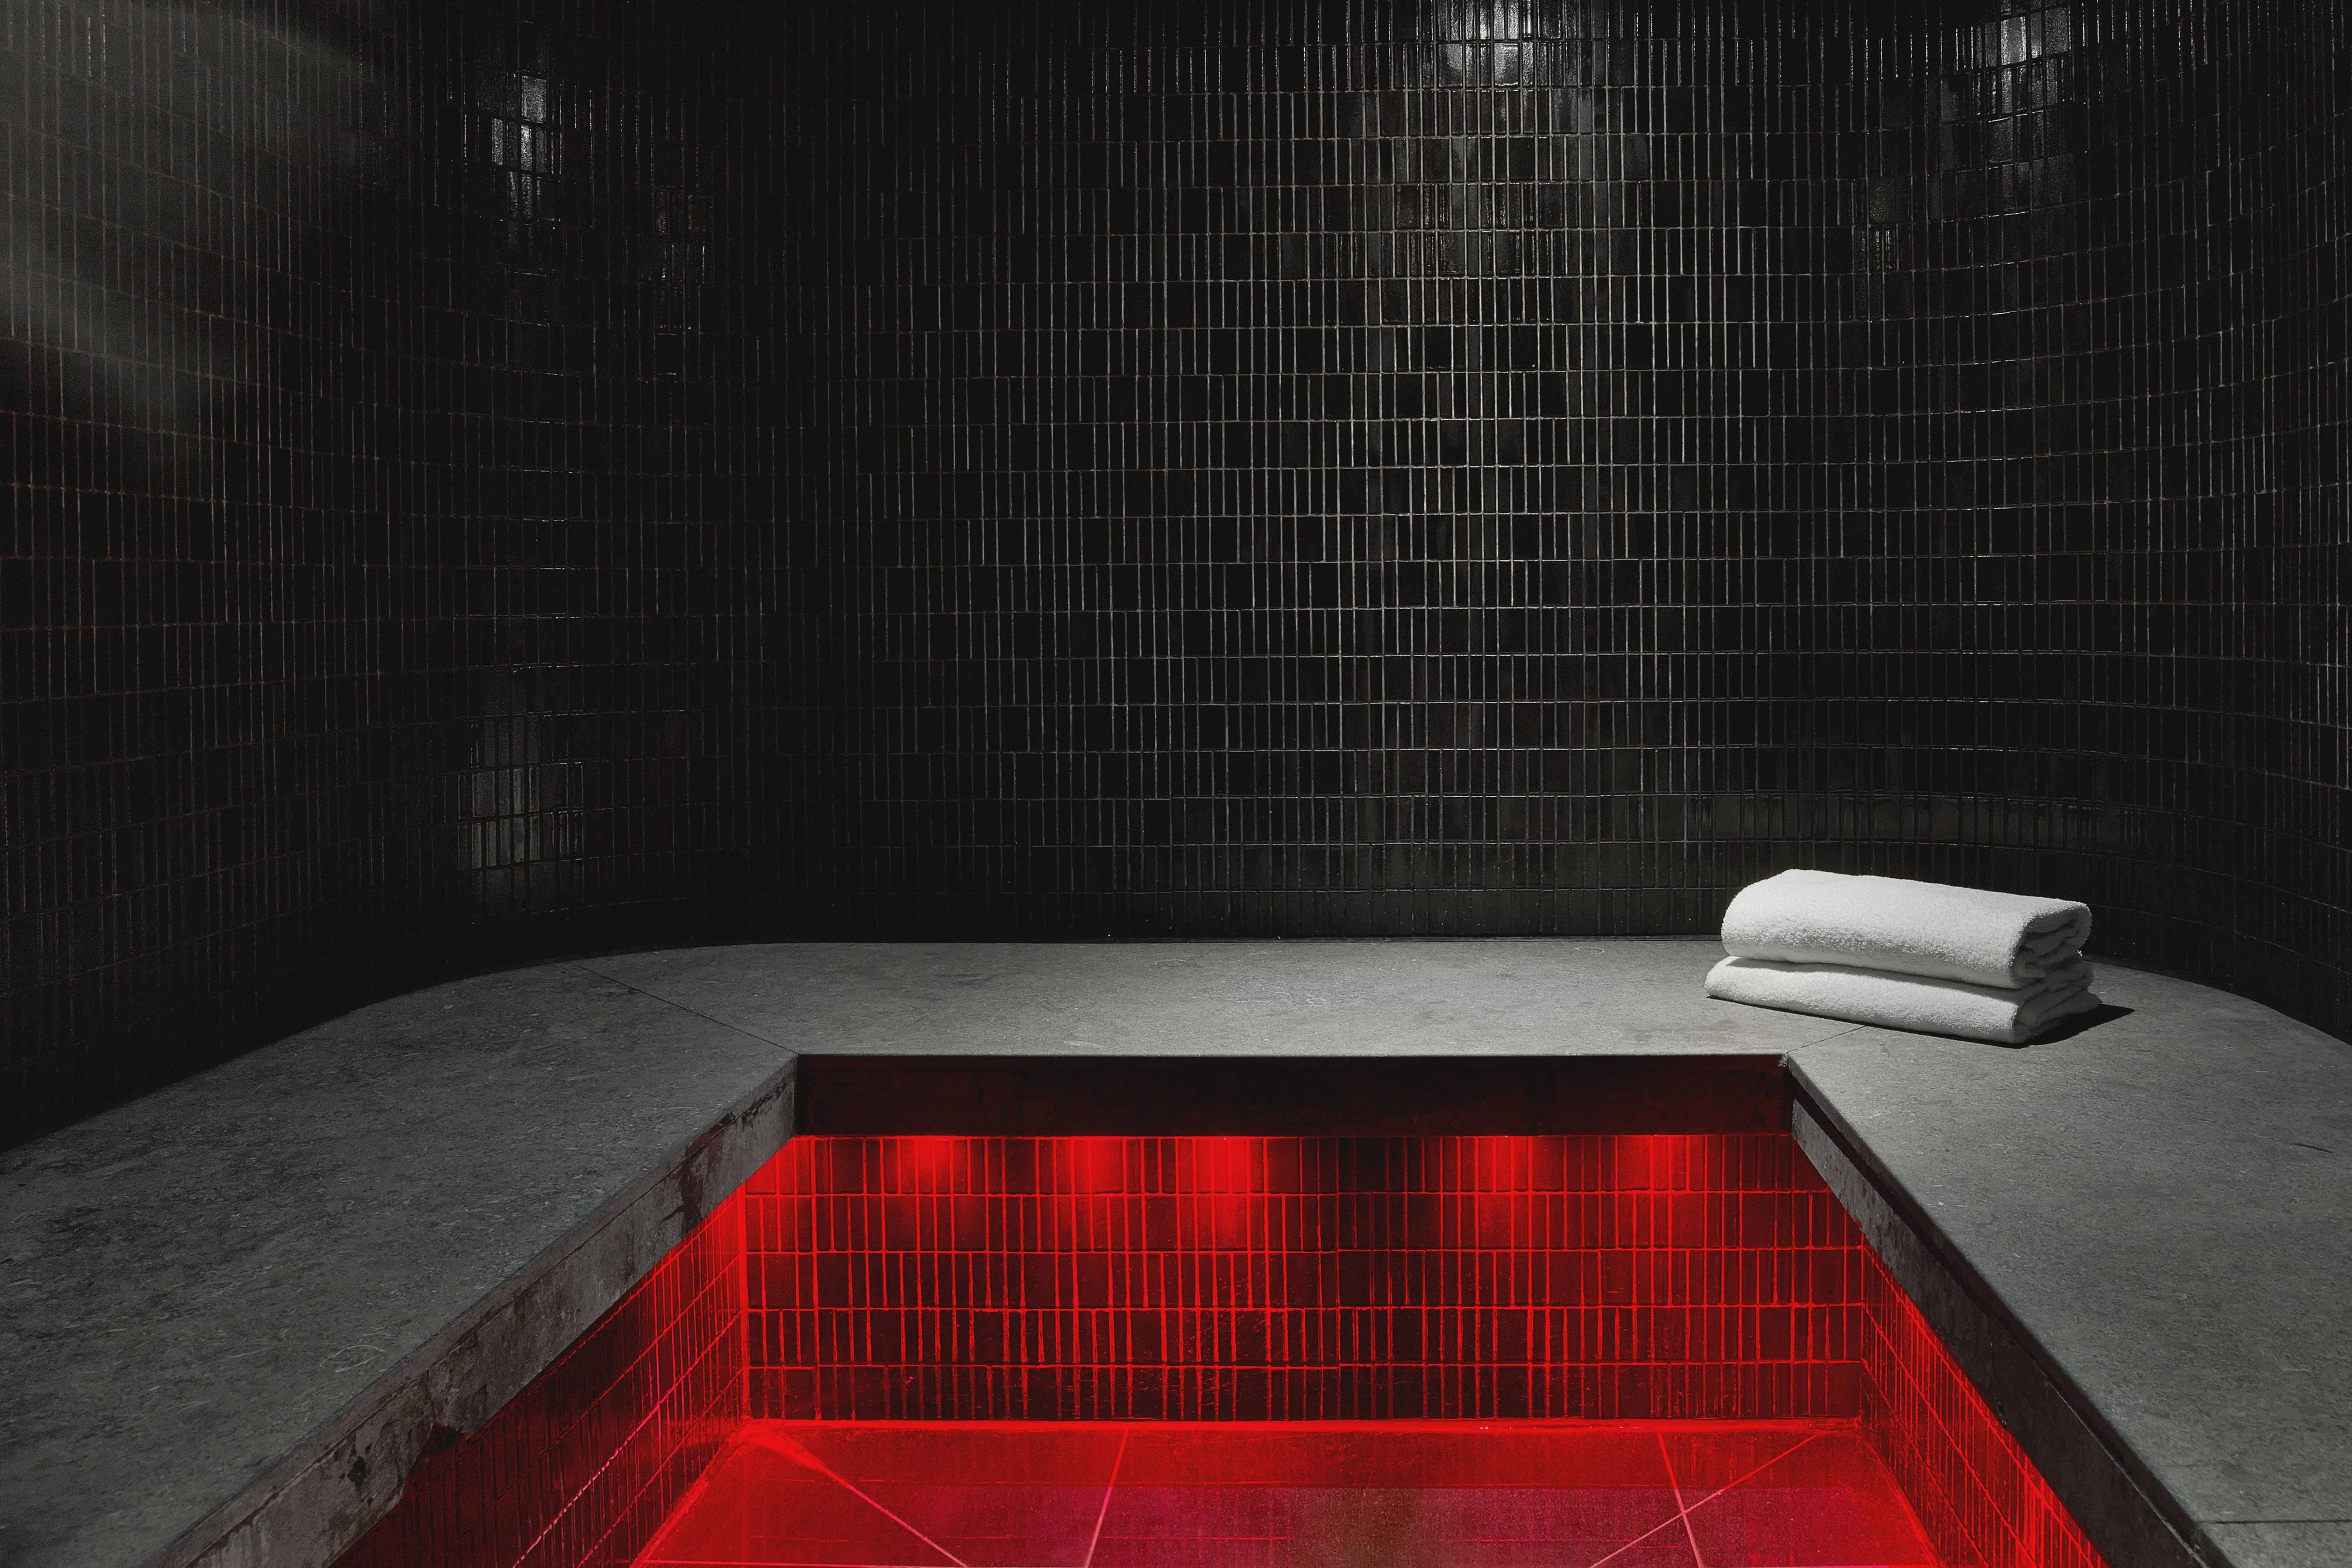 AwaySpa steam Room